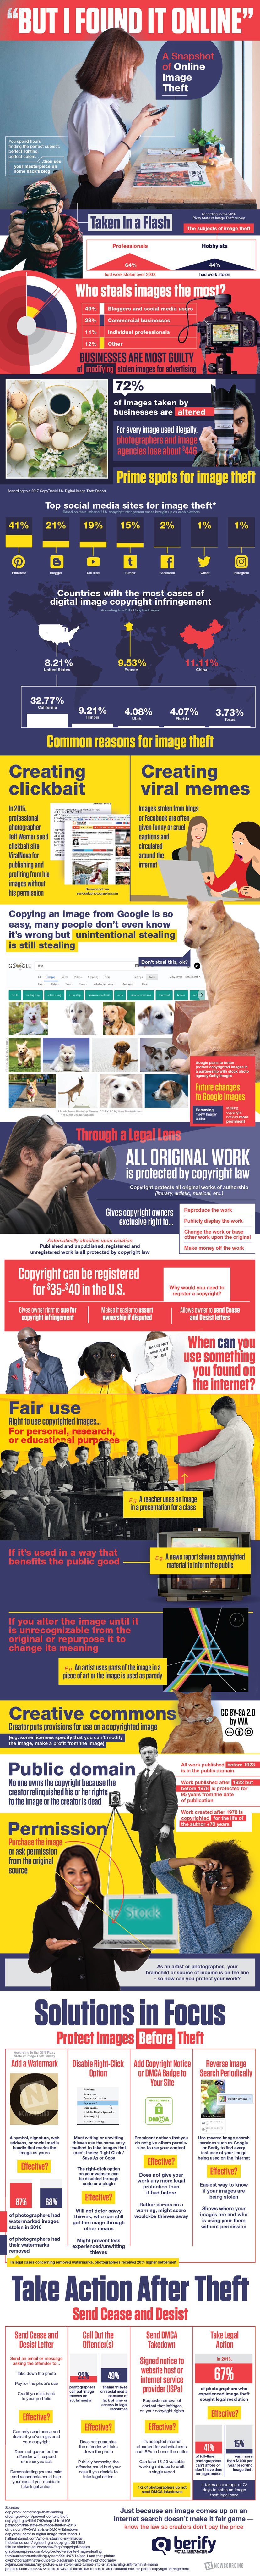 Image theft infographic